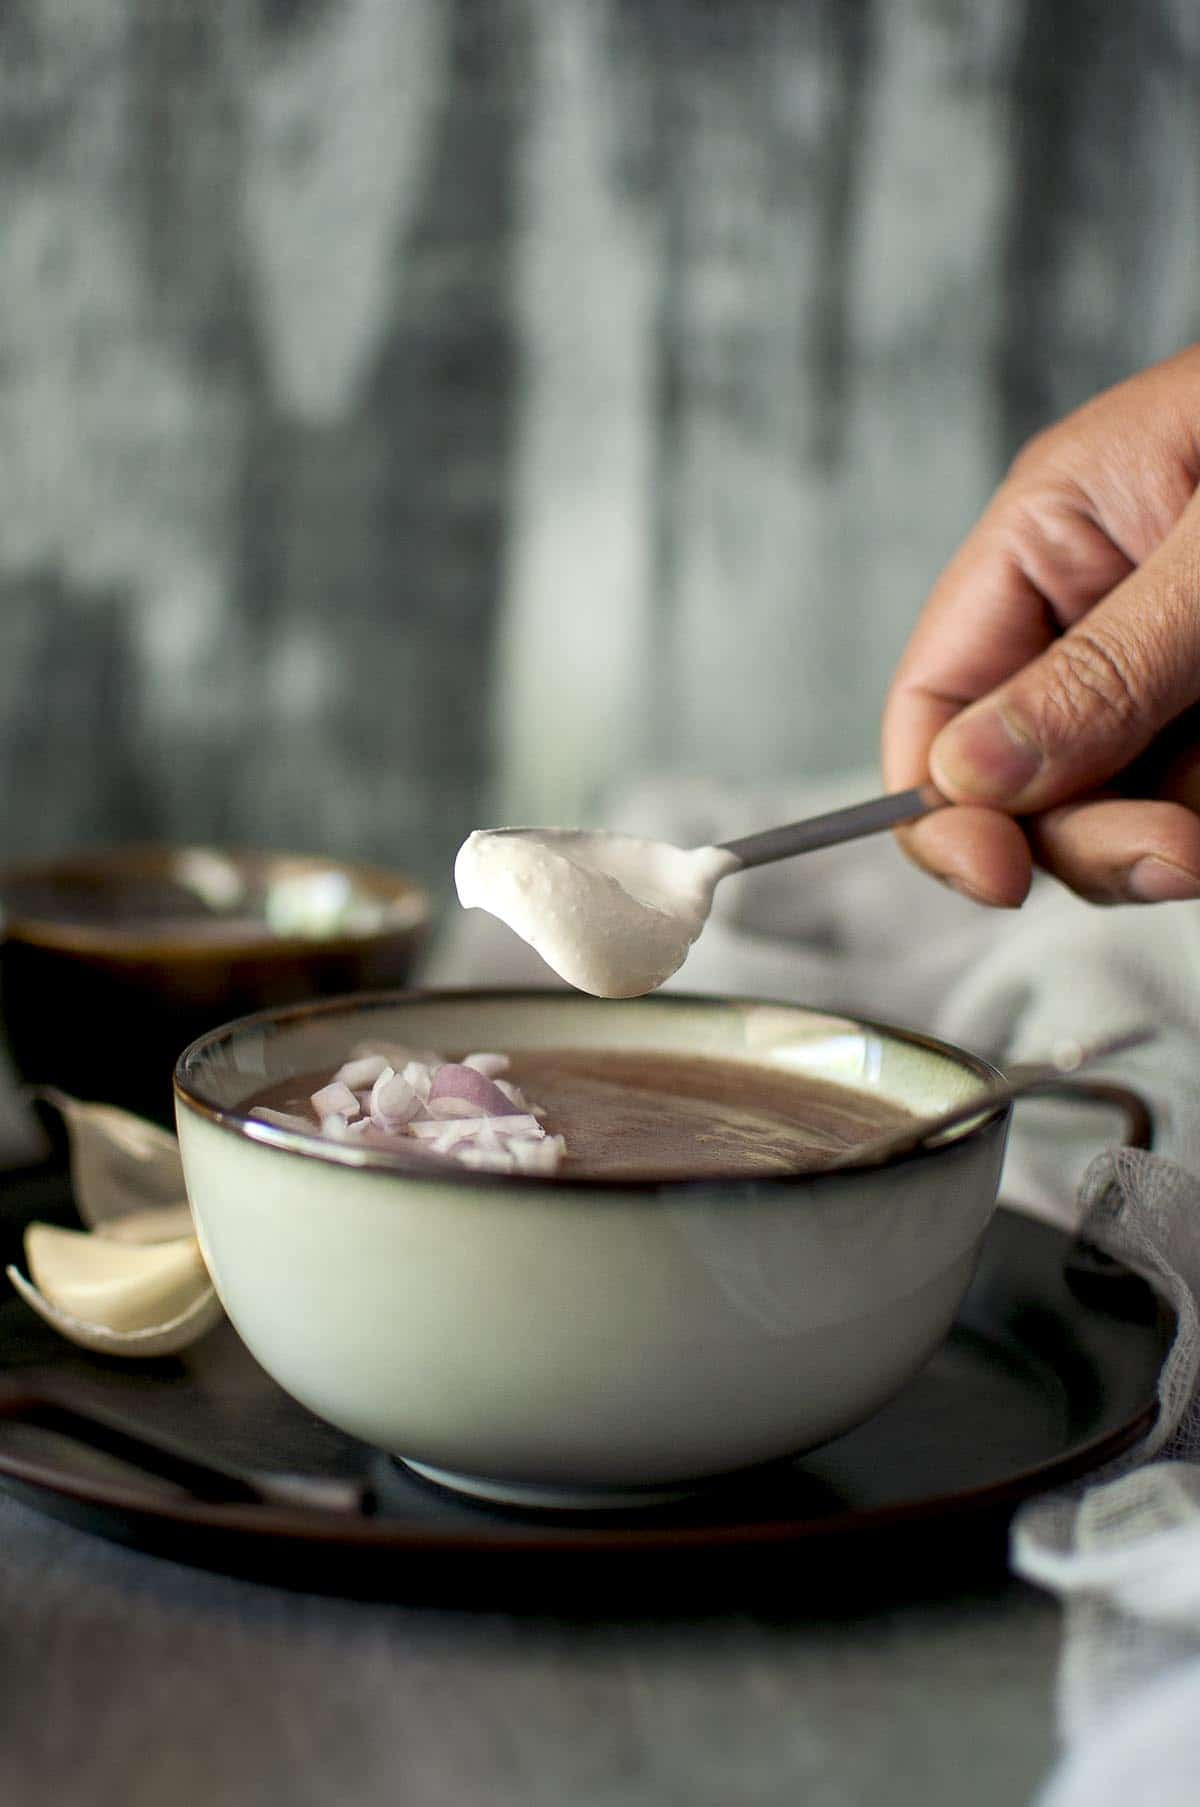 Hand putting a dollop of yogurt into a grey bowl of finger millet soup